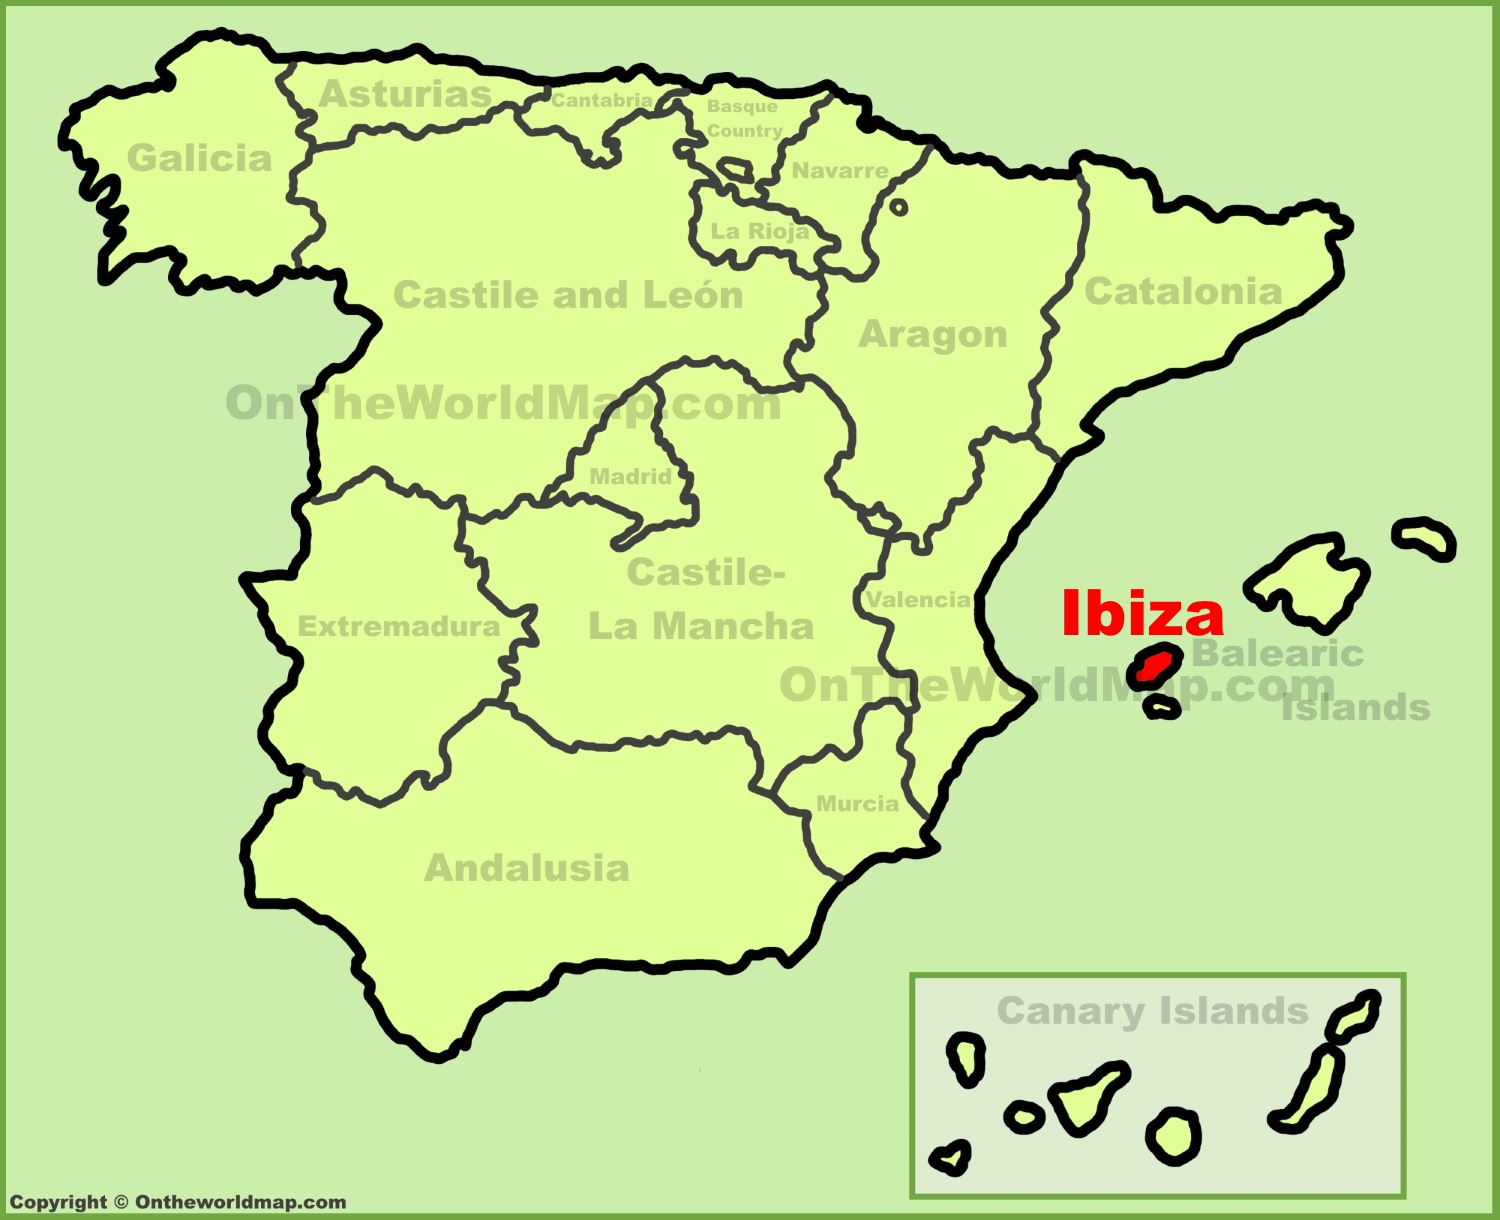 Ibiza location on the Spain map